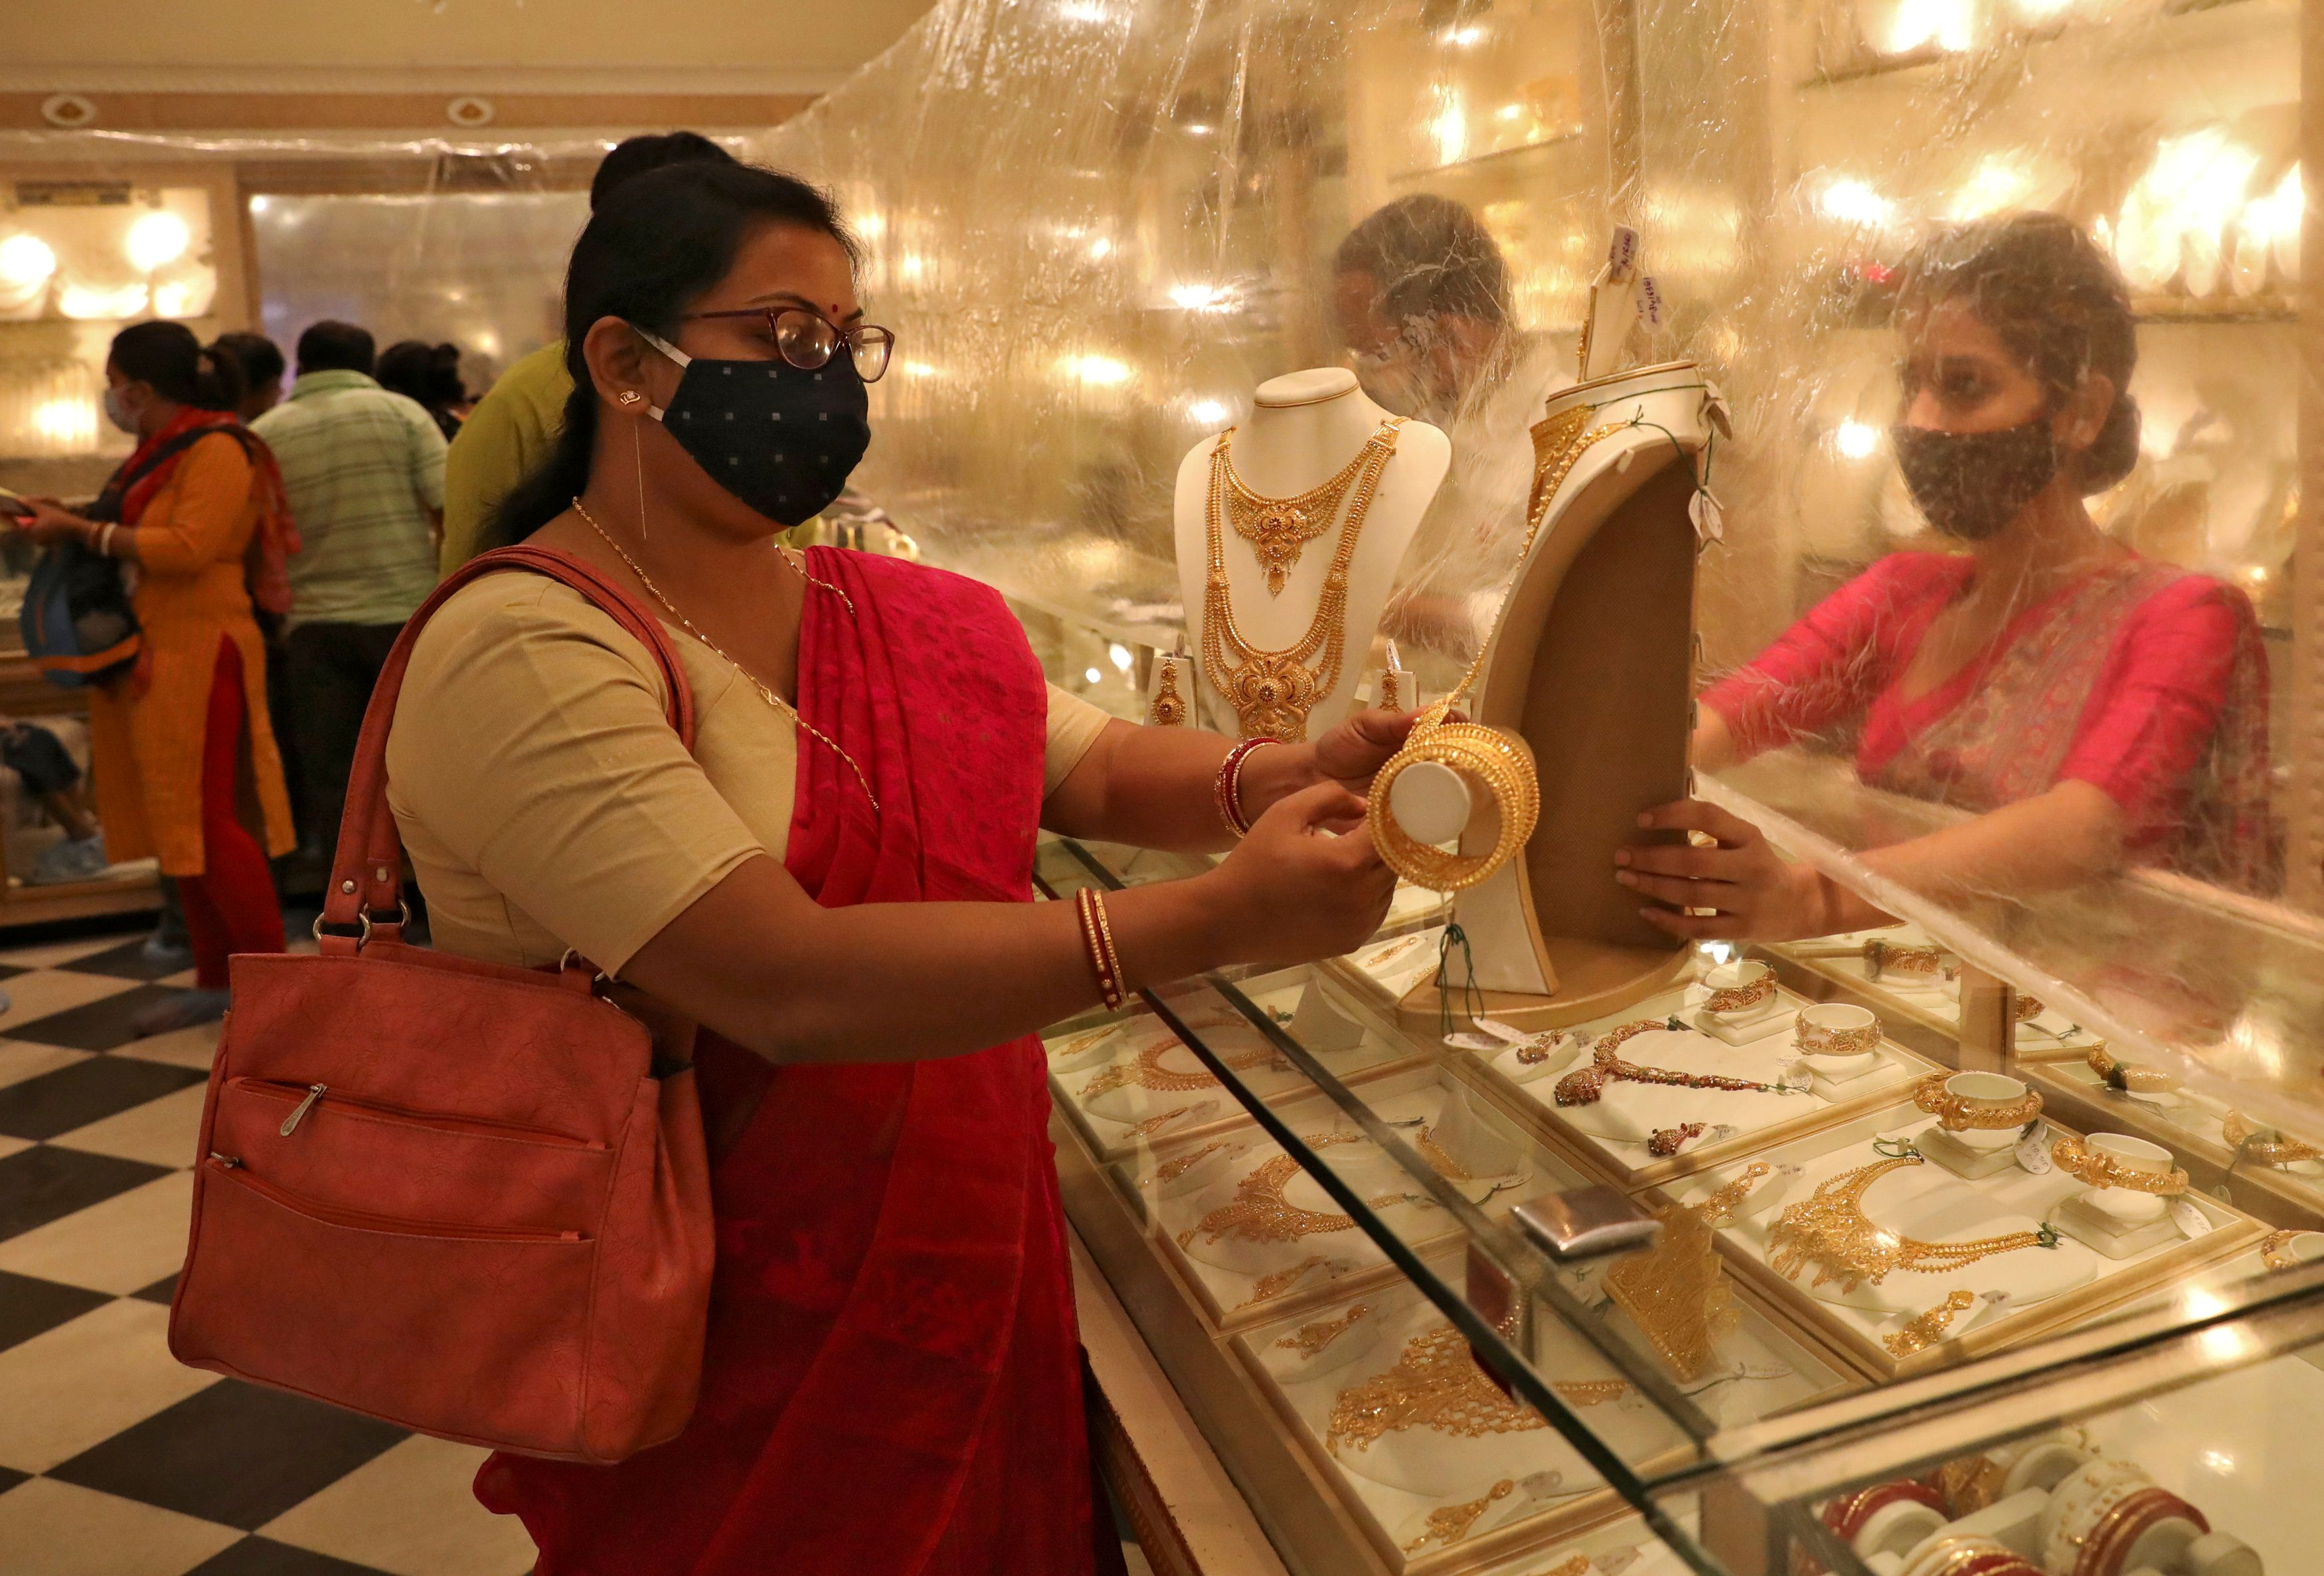 Woman looks at a gold necklace at a jewellery showroom during Dhanteras, a Hindu festival associated with Lakshmi, the goddess of wealth, amidst the spread of COVID-19 in Kolkata, India, November 13, 2020. REUTERS/Rupak De Chowdhuri/File Photo